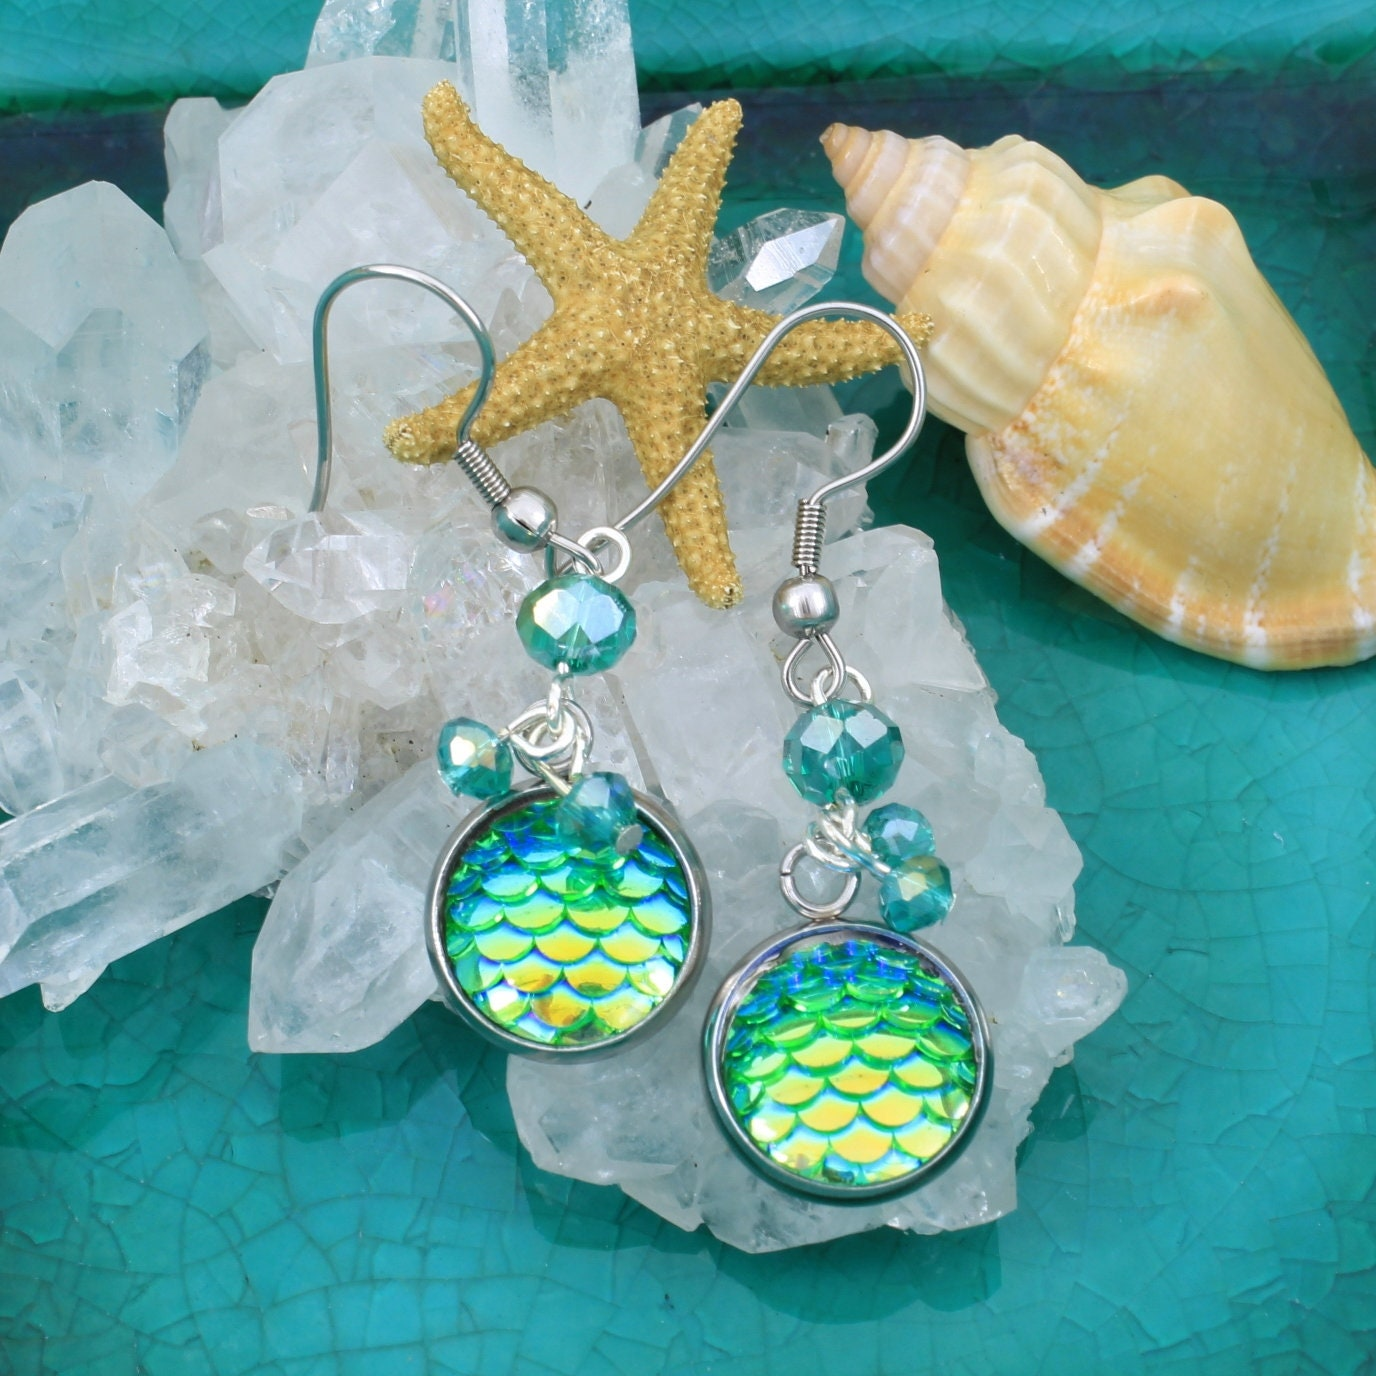 Mermaid,earrings,,Fish,scale,earrings,Jewelry,Earrings,mermaid_earrings,dragonscale_earrings,mermaid_jewelry,fantasy_jewelry,green_earrings,blue_earrings,little_girl_earrings,cosplay_earrings,one_of_a_kind,handmade_jewelry,ocean_theme,Arial_jewelry,Stainless steel